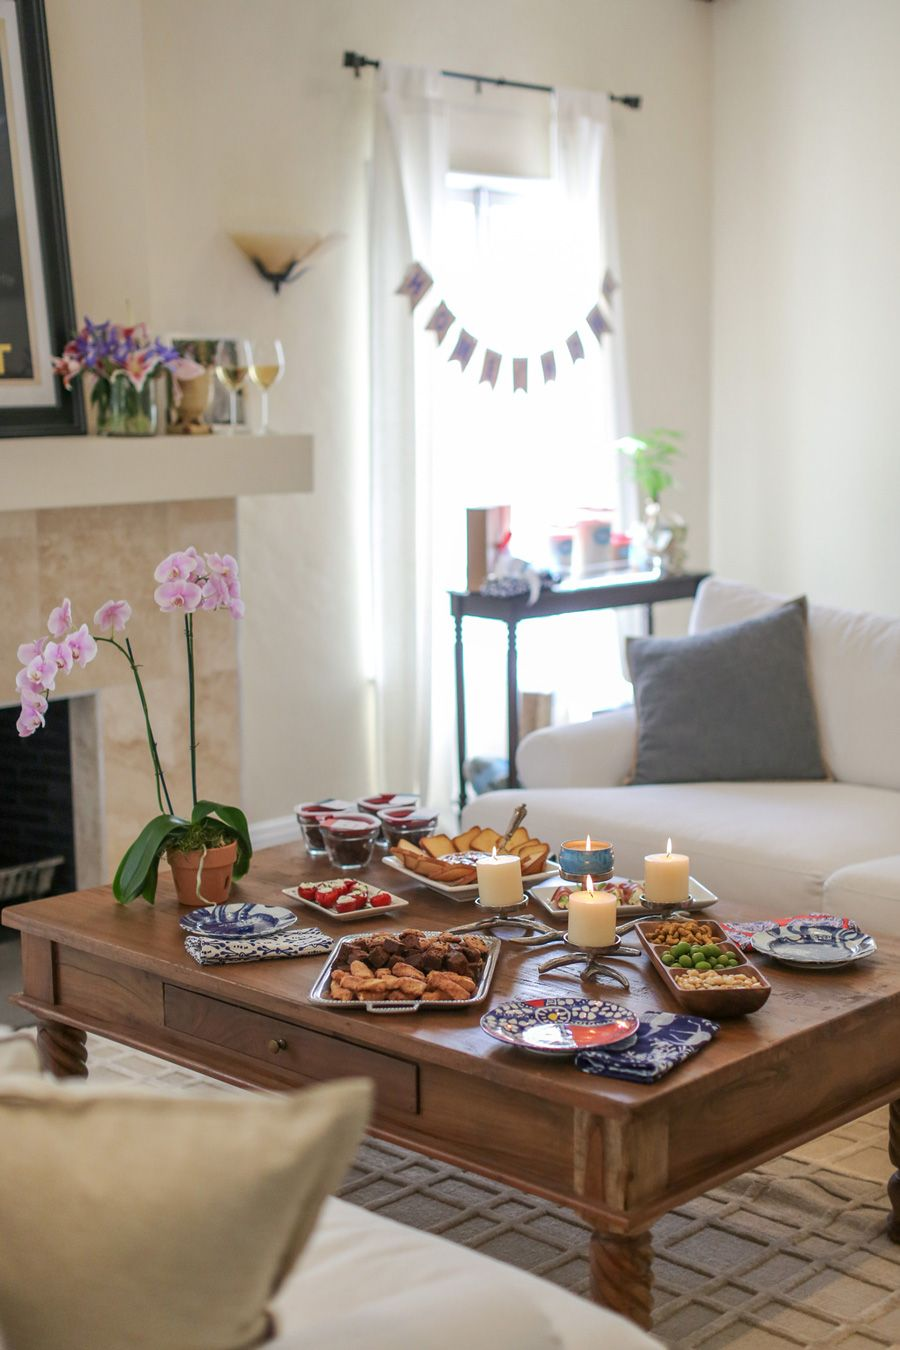 How To Throw A Great Housewarming Party | House Warming Games ...